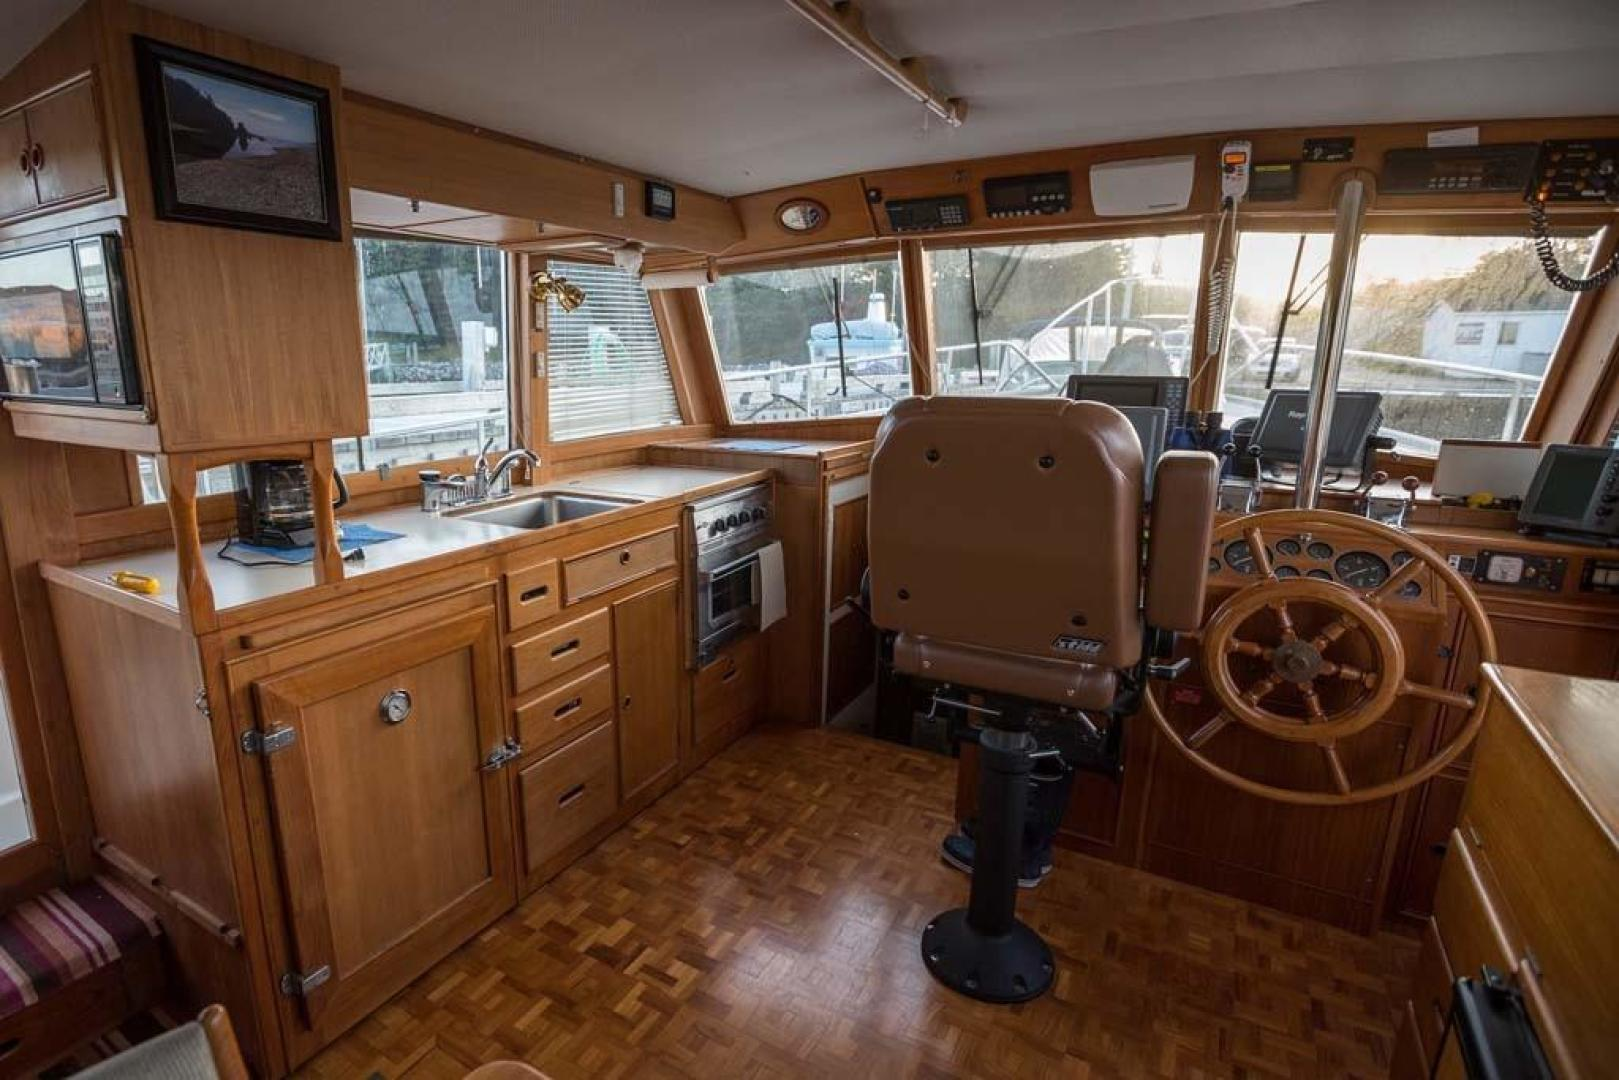 Grand Banks-42 Classic 1995-Little Salmonier St. Johns-Newfoundland And Labrador-Canada-Salon Forward to Galley and Helm-920922 | Thumbnail